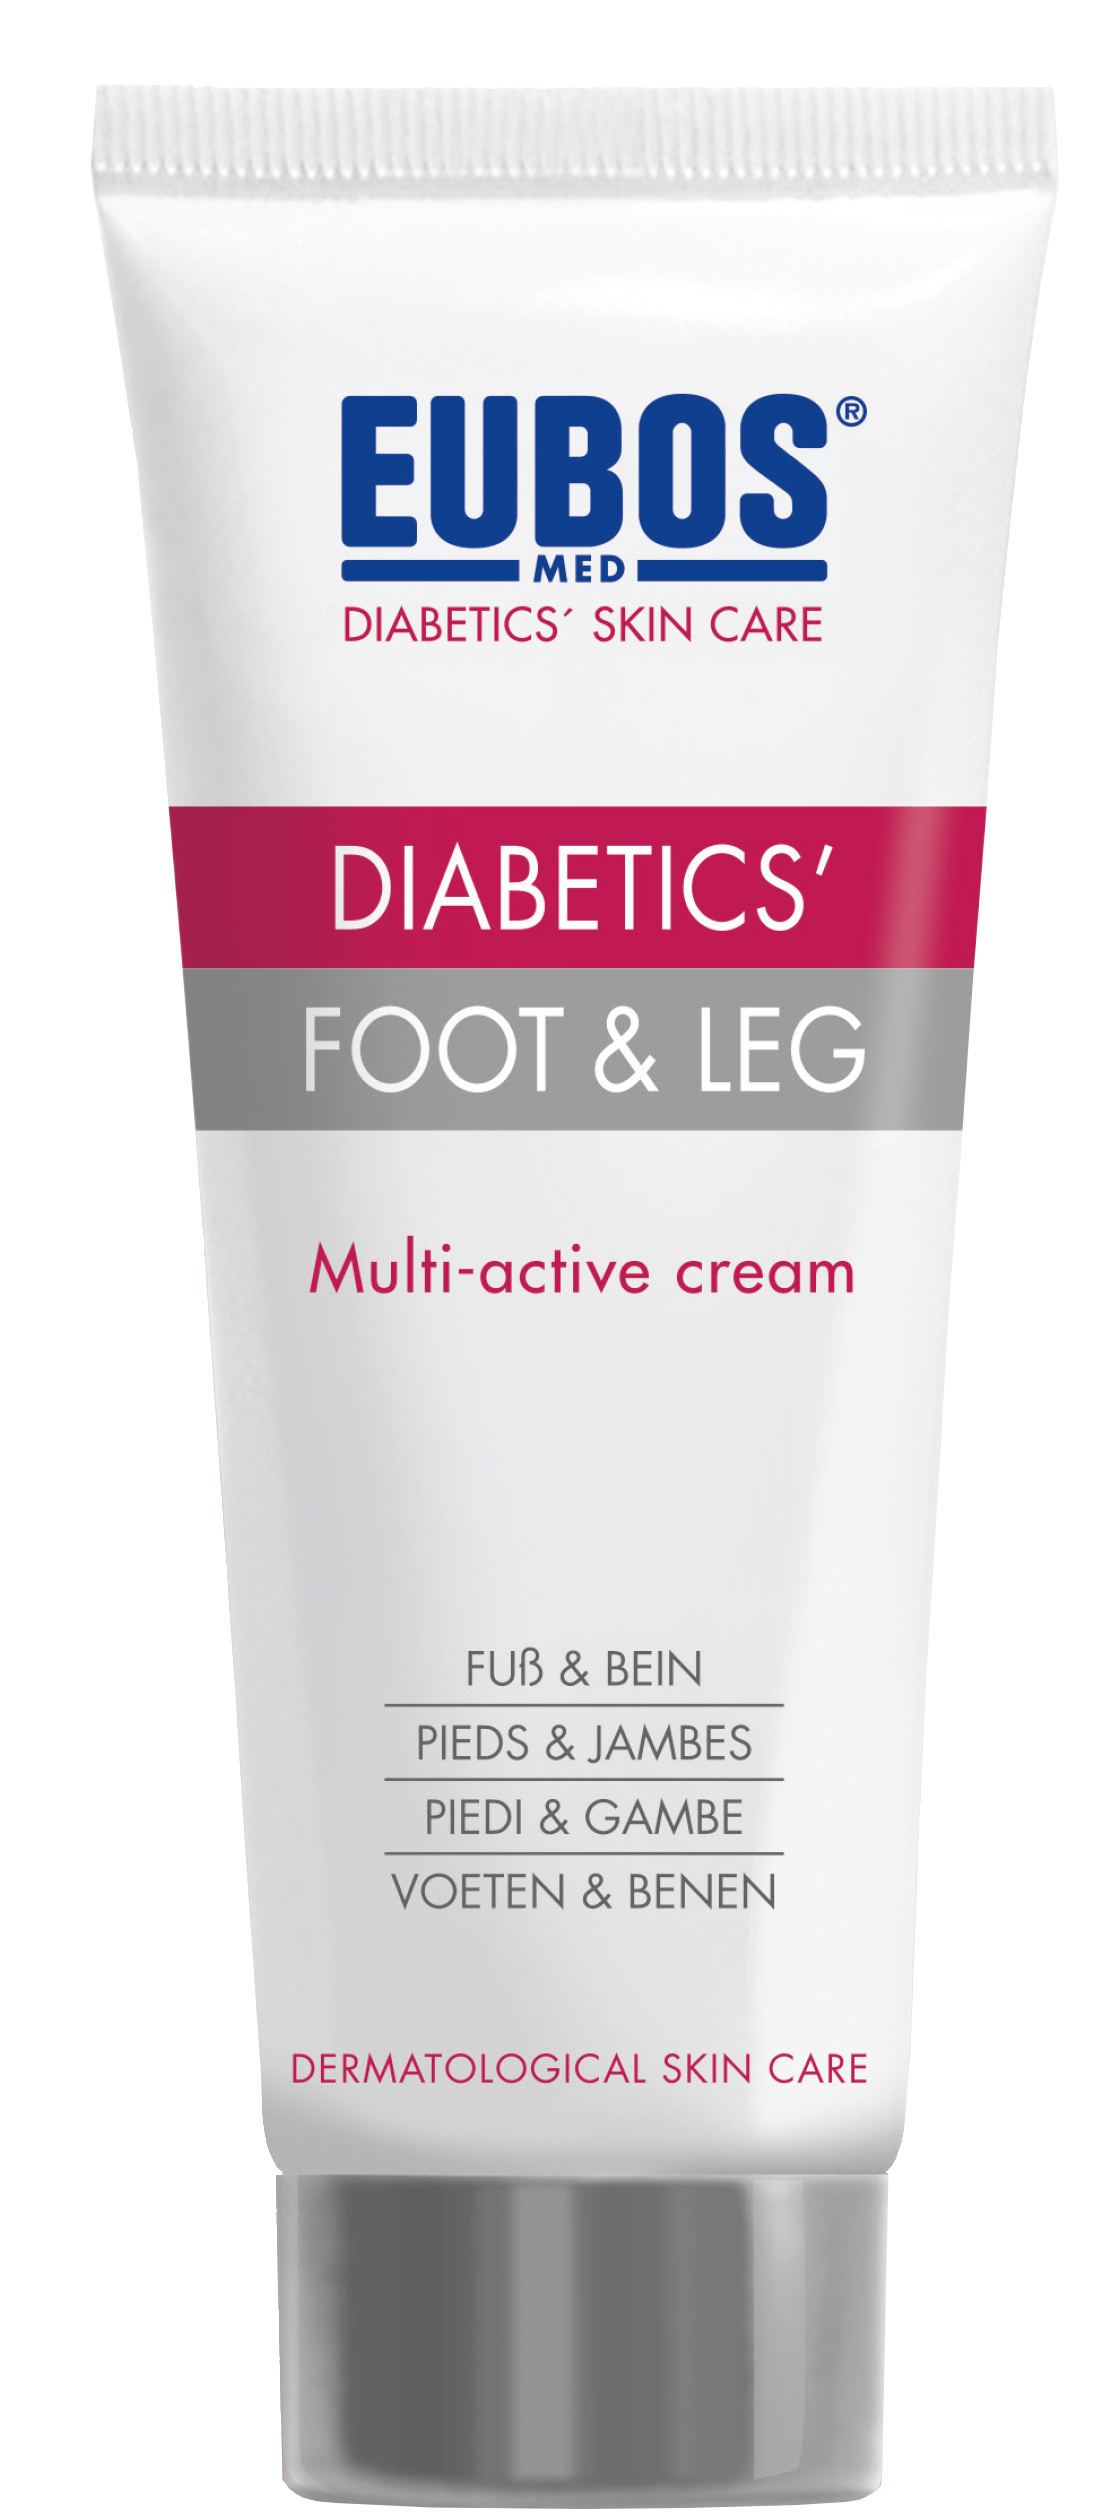 creme eubos diabetics' foot & leg 100 ml